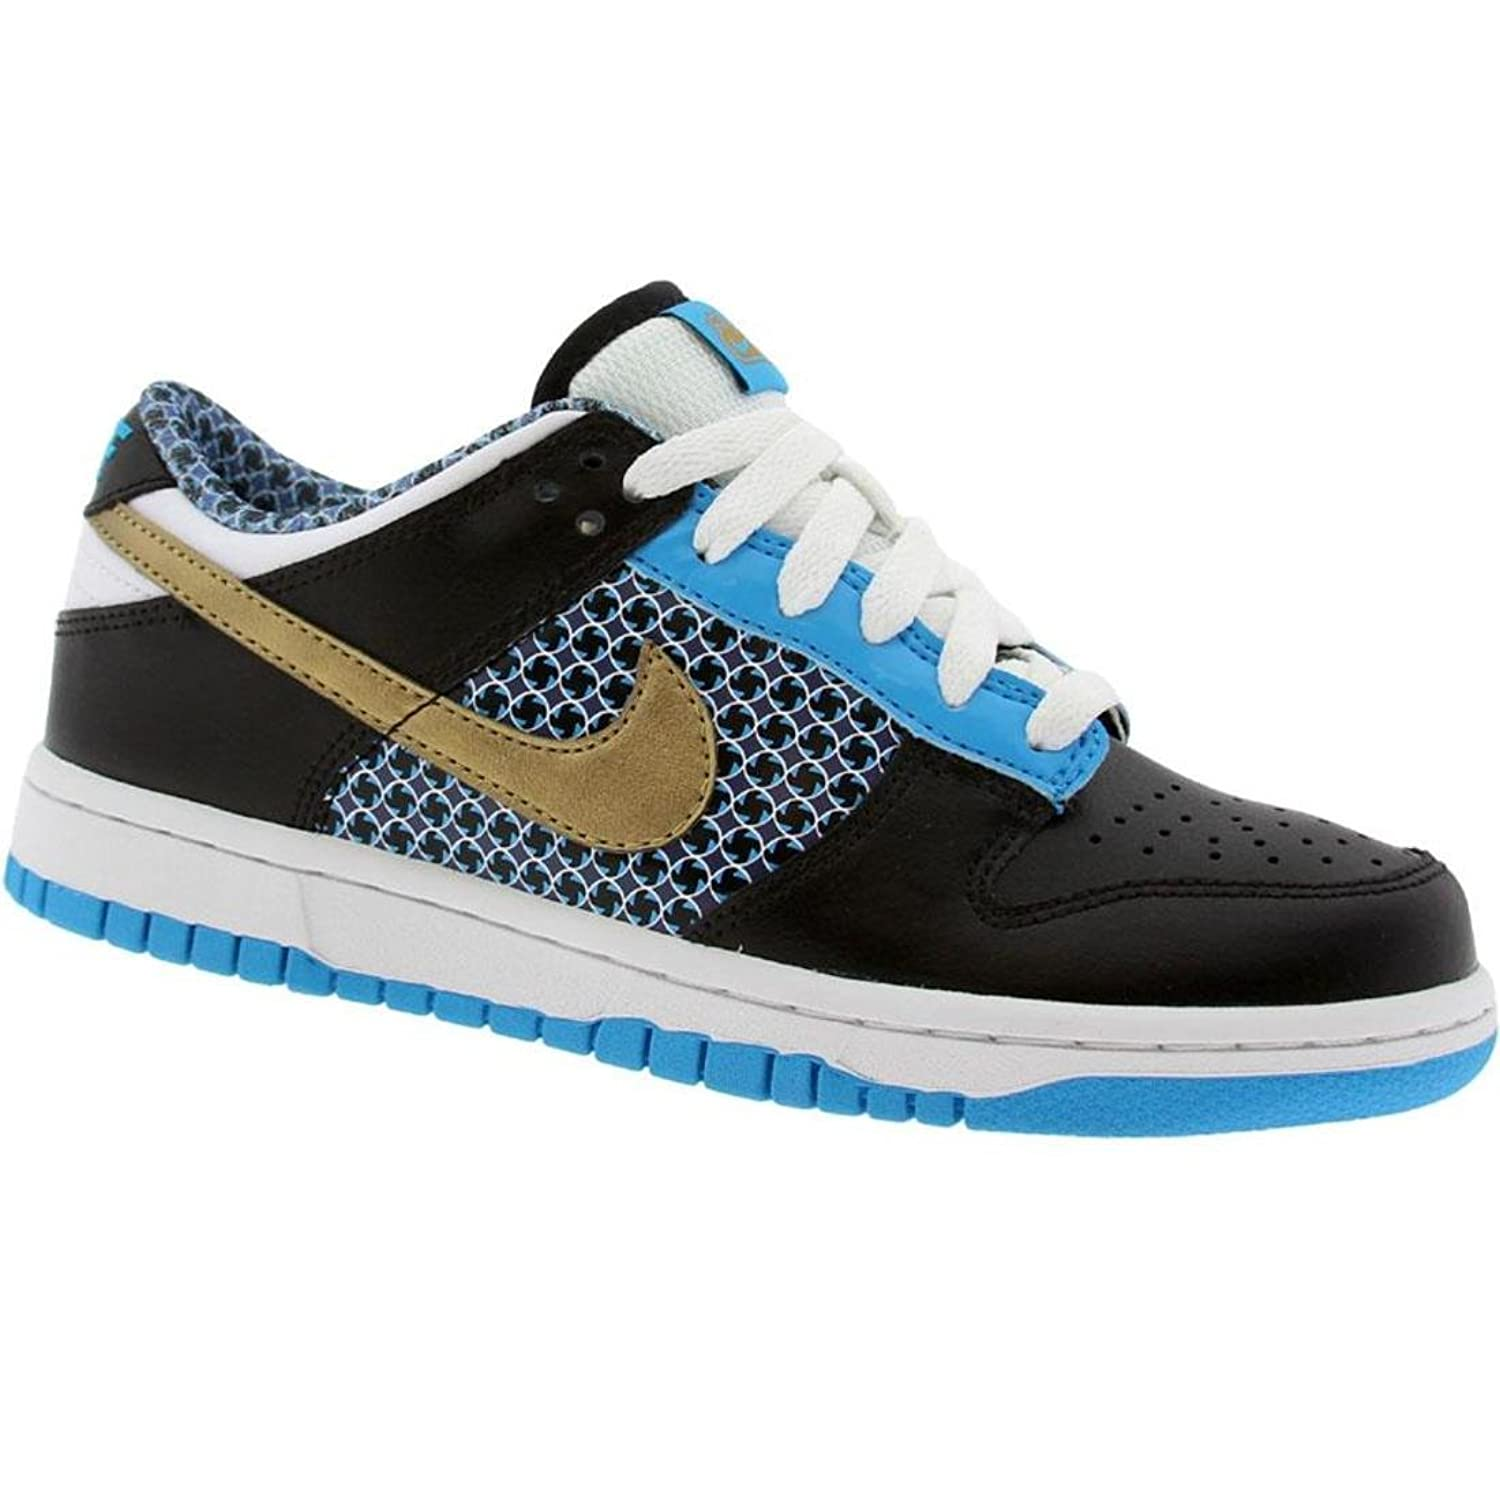 Nike Women' s Dunk Low 6.0